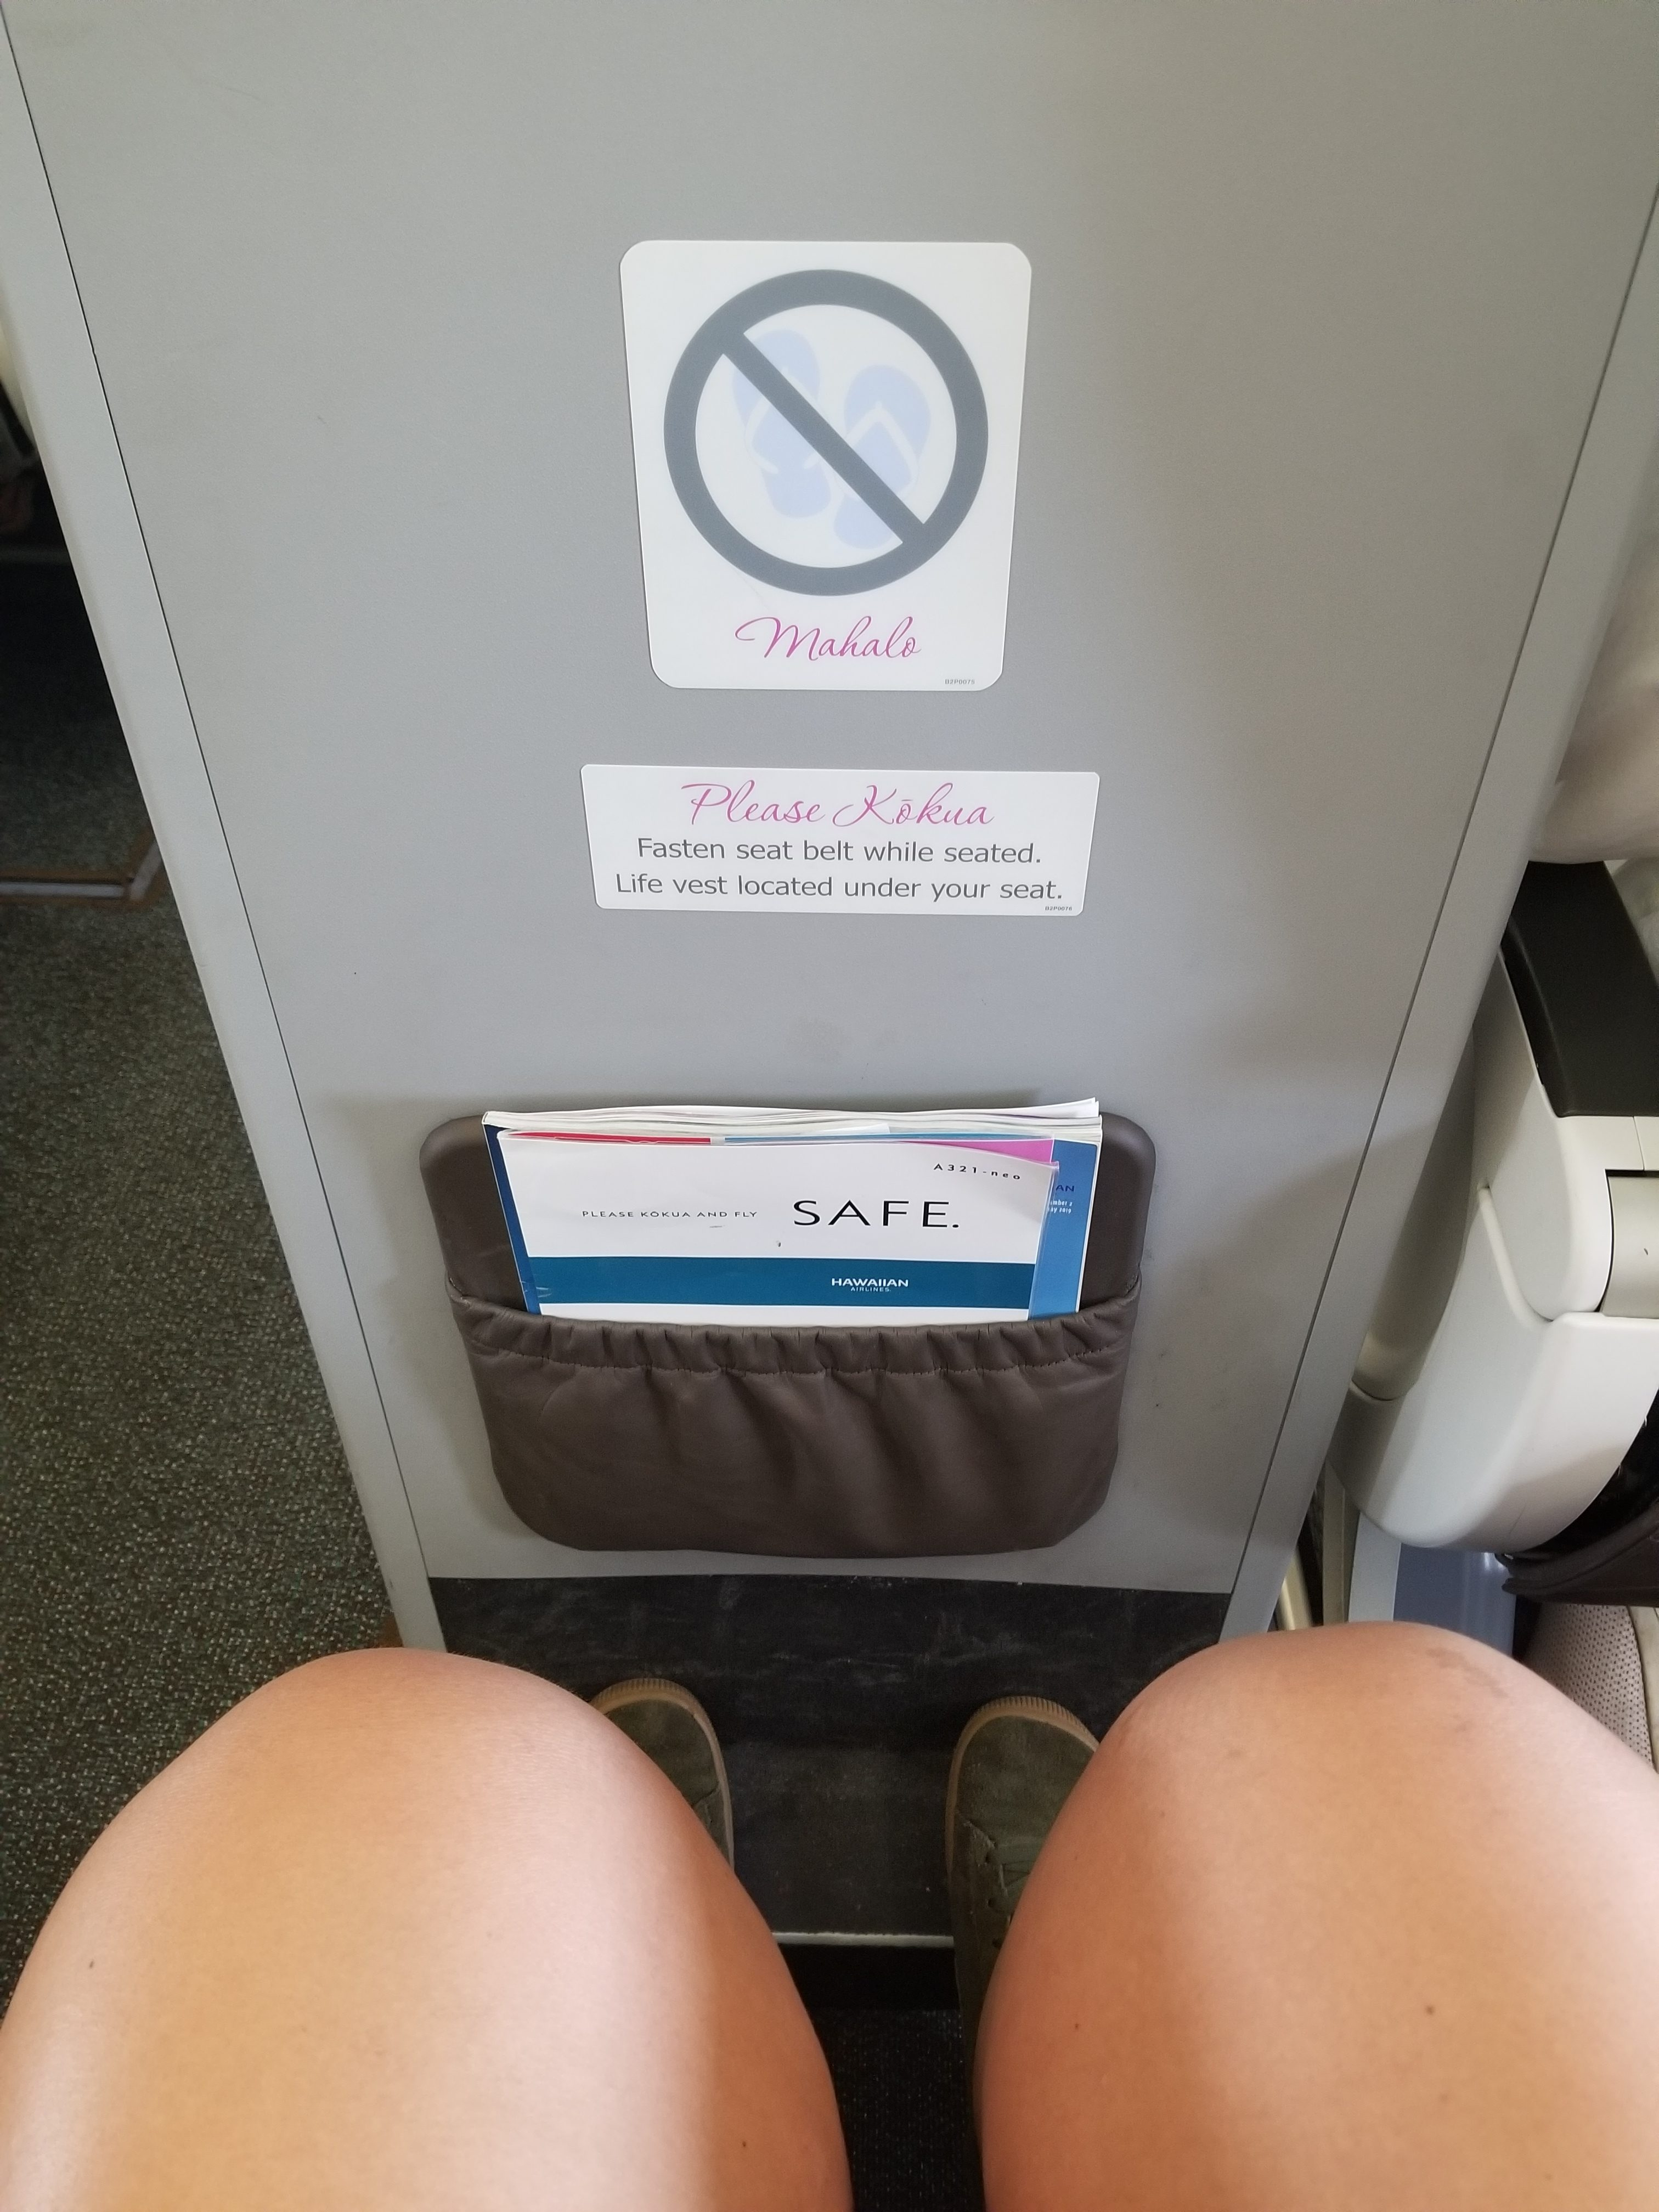 Pleasant Hawaiian Airlines Customer Reviews Skytrax Ibusinesslaw Wood Chair Design Ideas Ibusinesslaworg